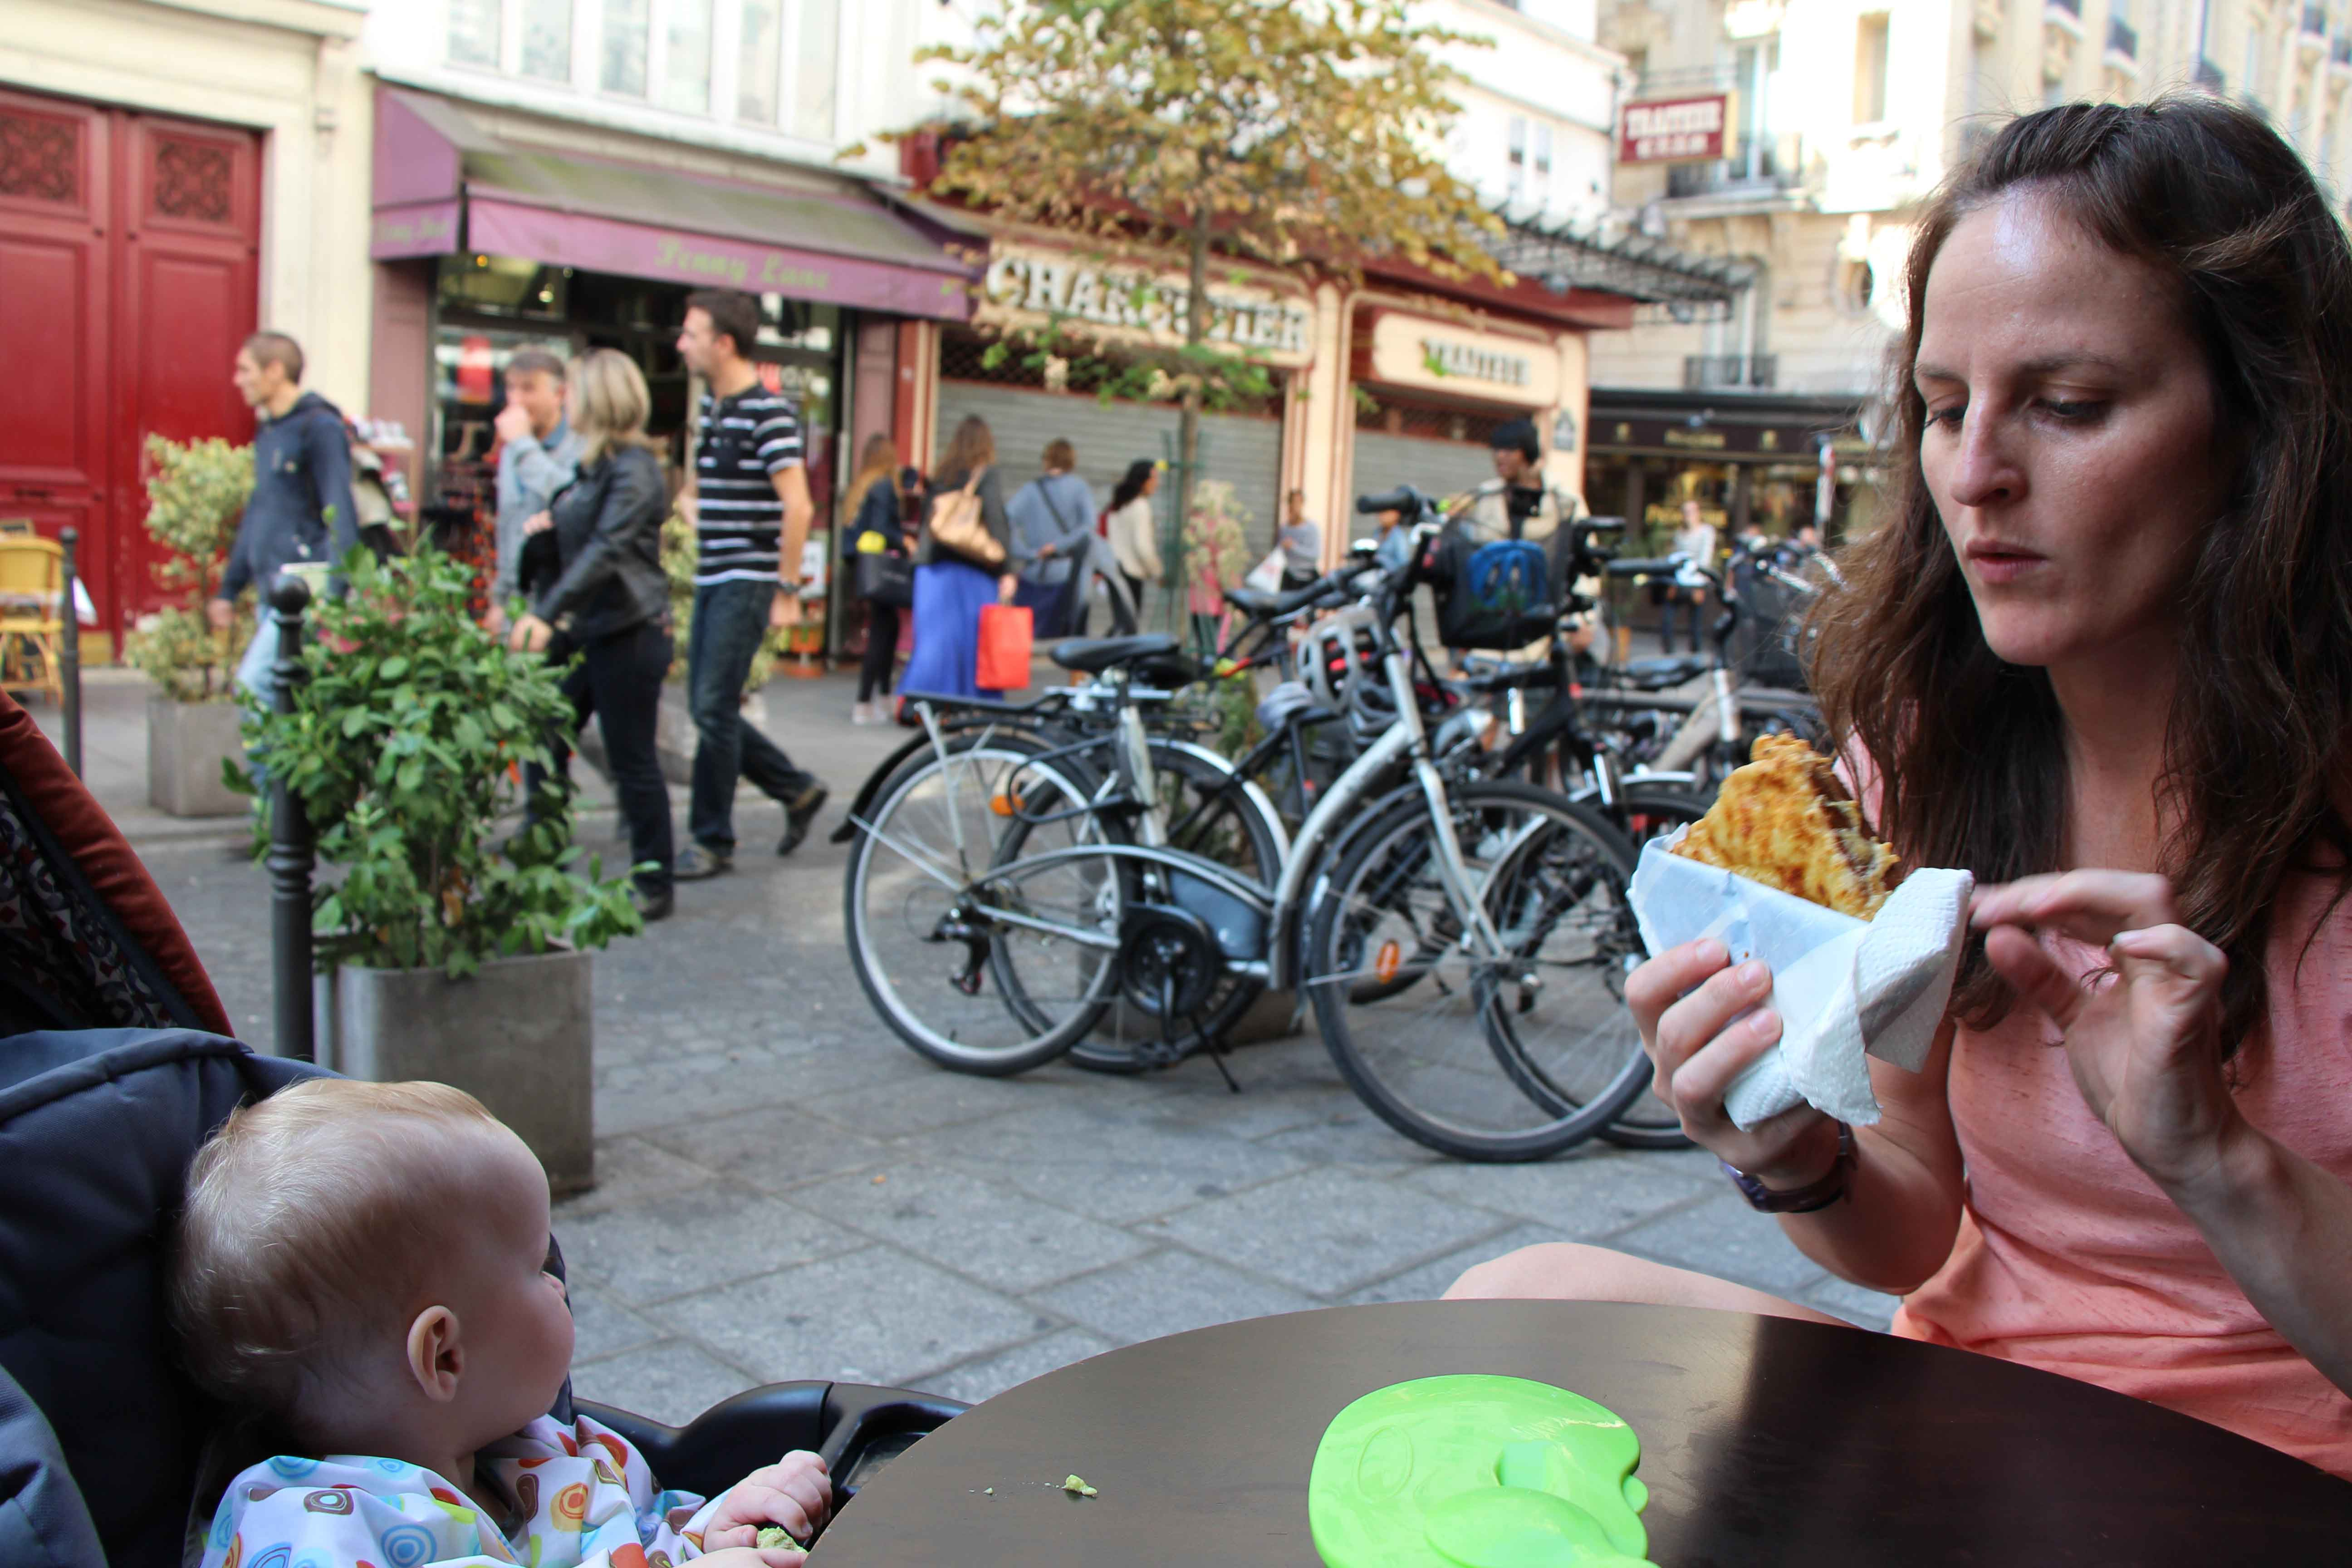 Baby-Can-Travel---Travel-Highchair-Comparison---Outdoor-eating-paris-with-baby